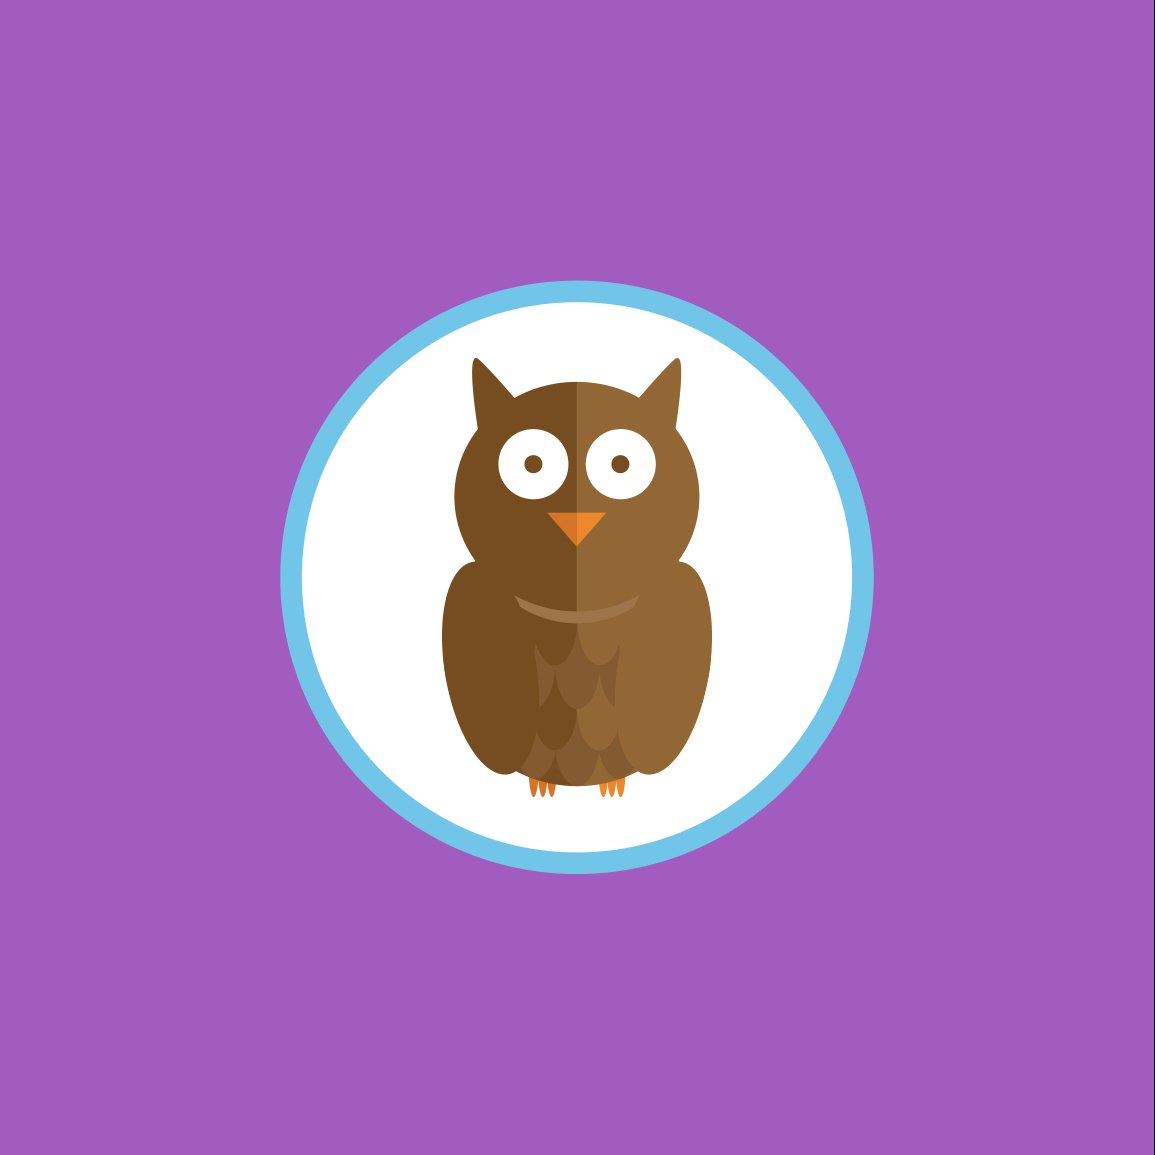 The Owl | Economics